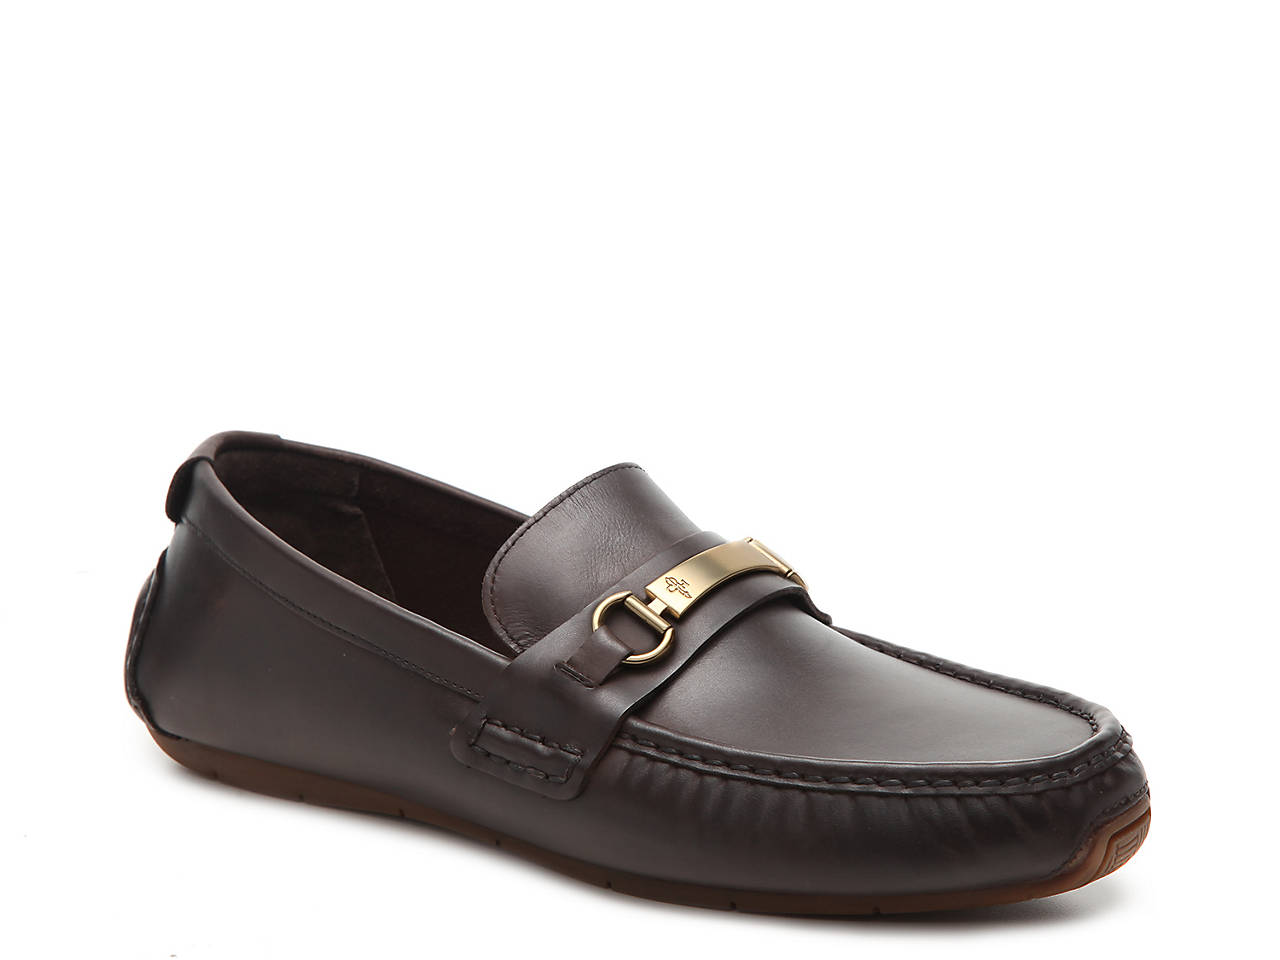 f31fbe19fcb Cole Haan Summers Loafer Men s Shoes